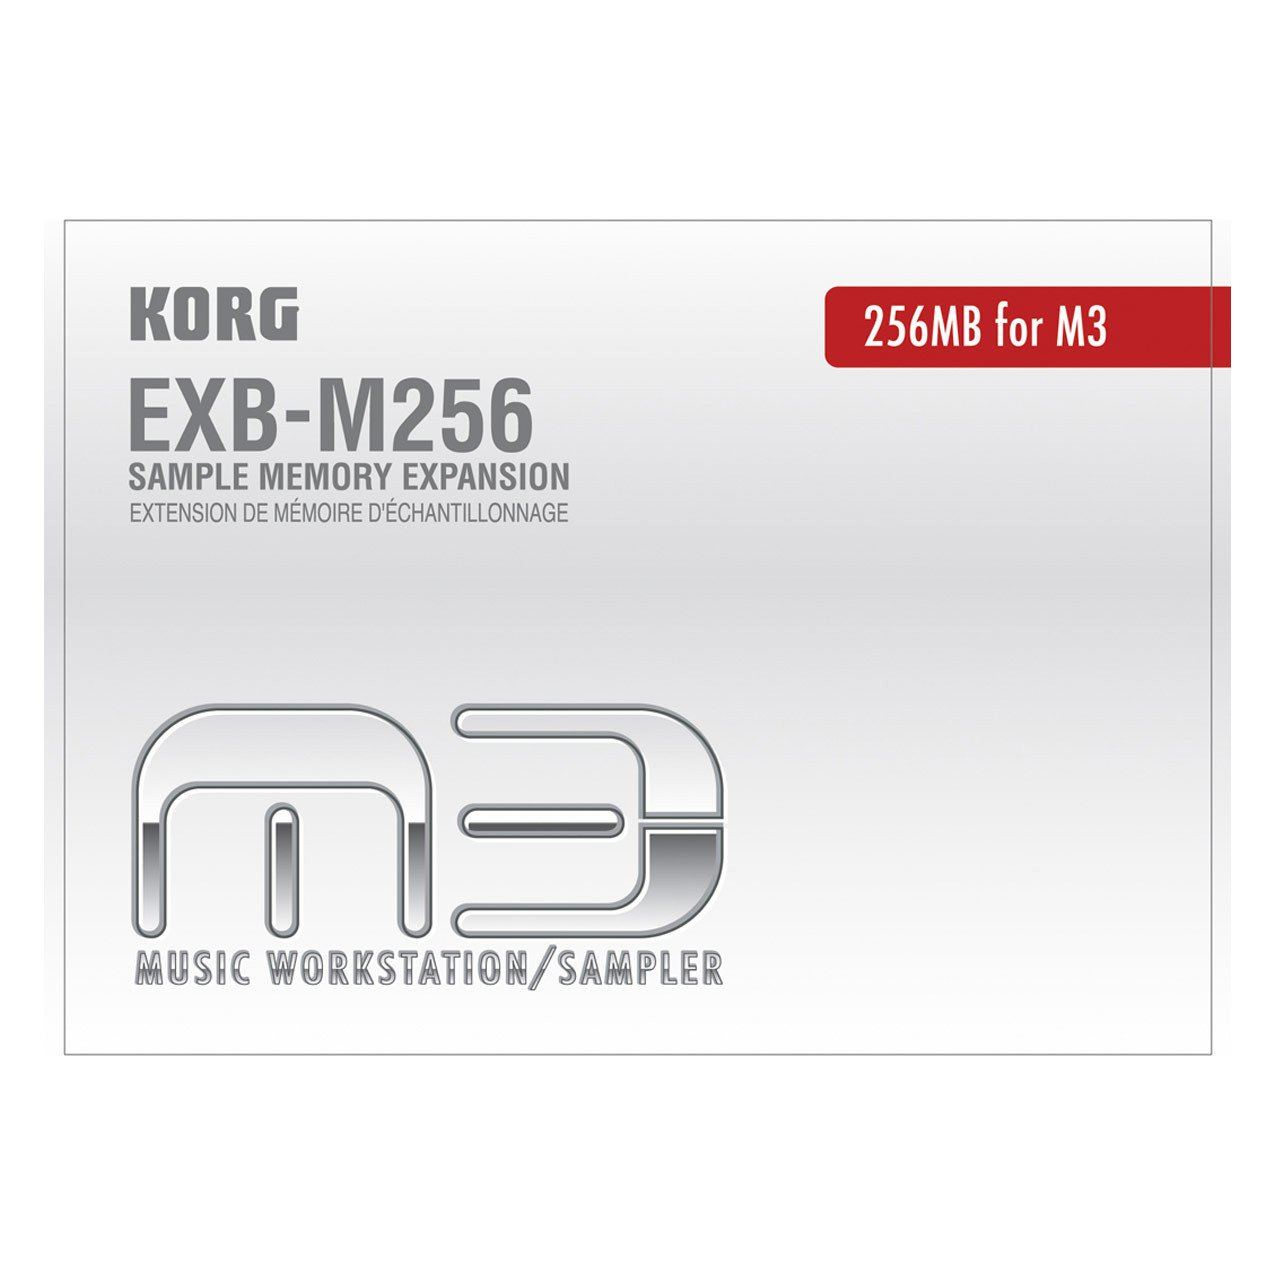 Keyboard Accessories - Korg EXB-M256 Sample Memory Expansion For M3